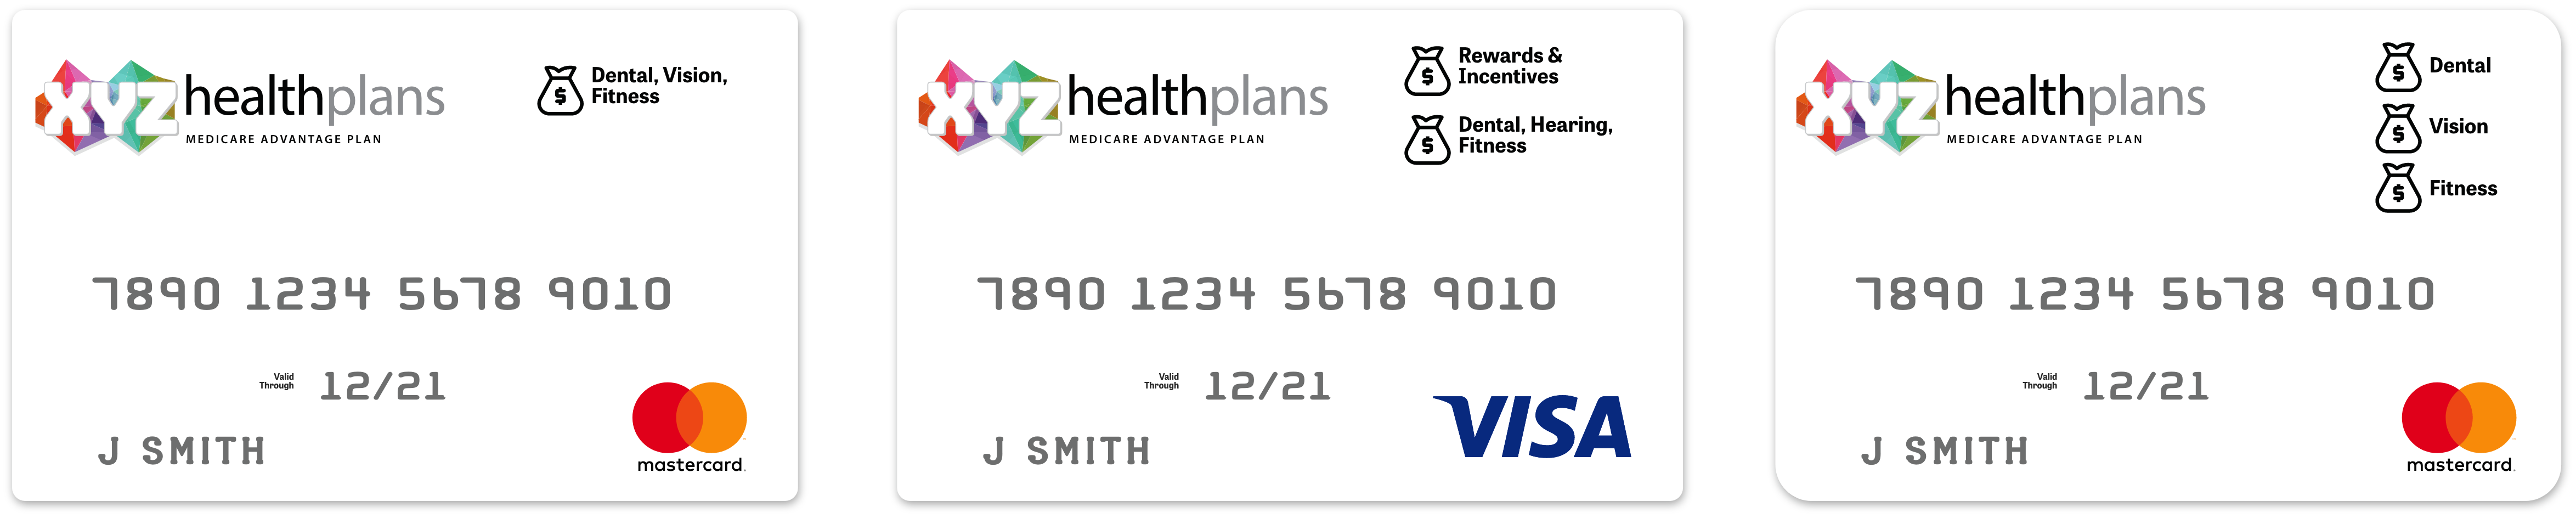 Customized debit cards with different options such as fitness, dental, vision, hearing, and more